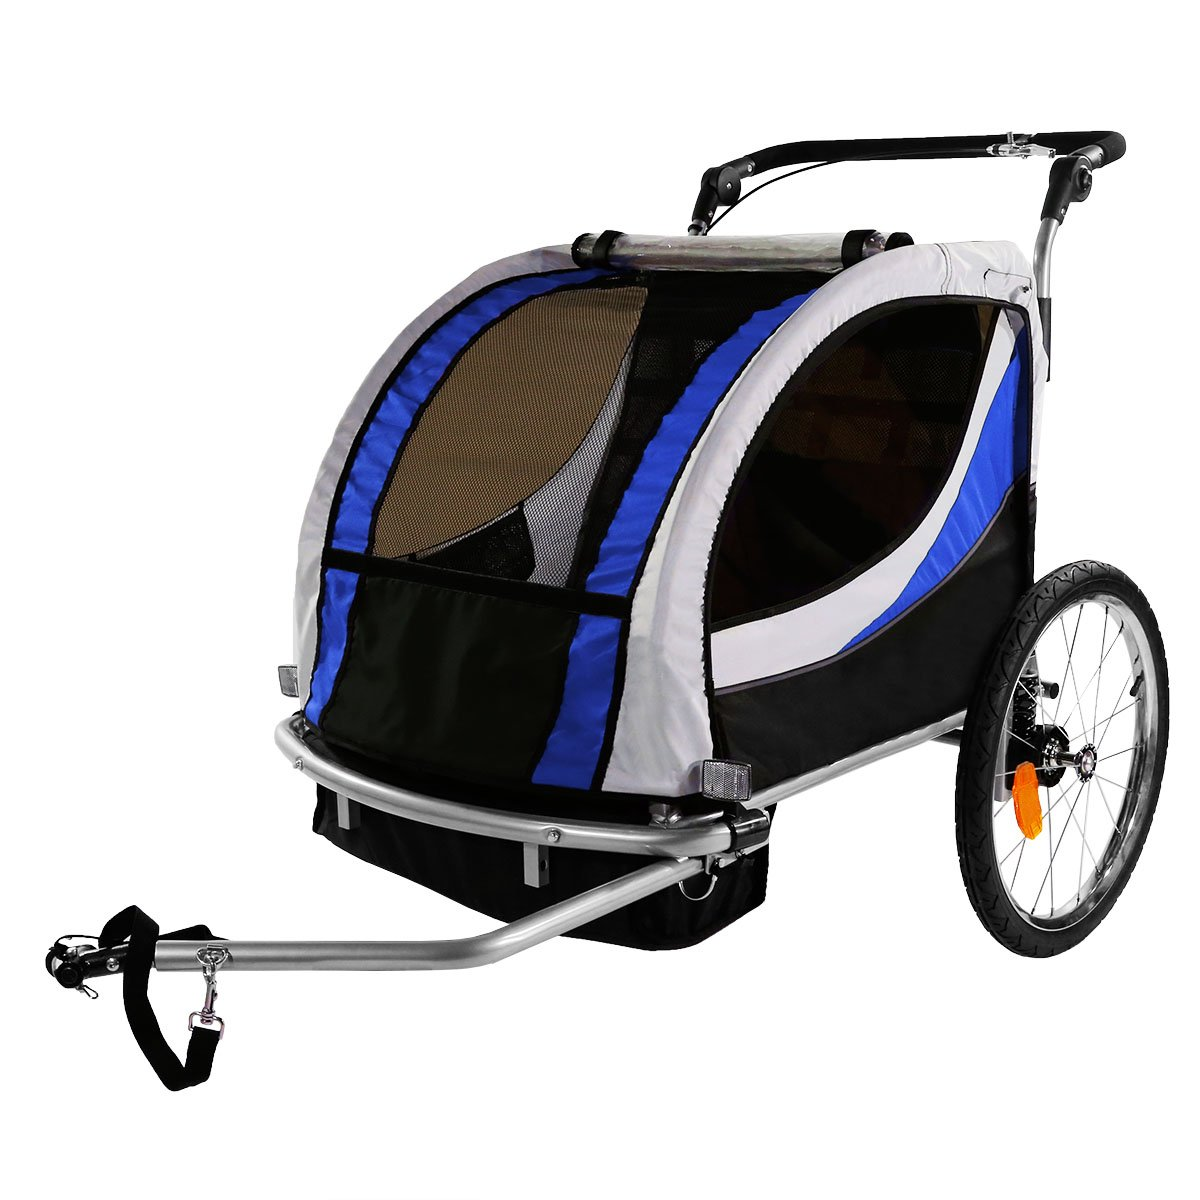 Clevr 3-in-1 Collapsible 2 Seat Double Bicycle Trailer